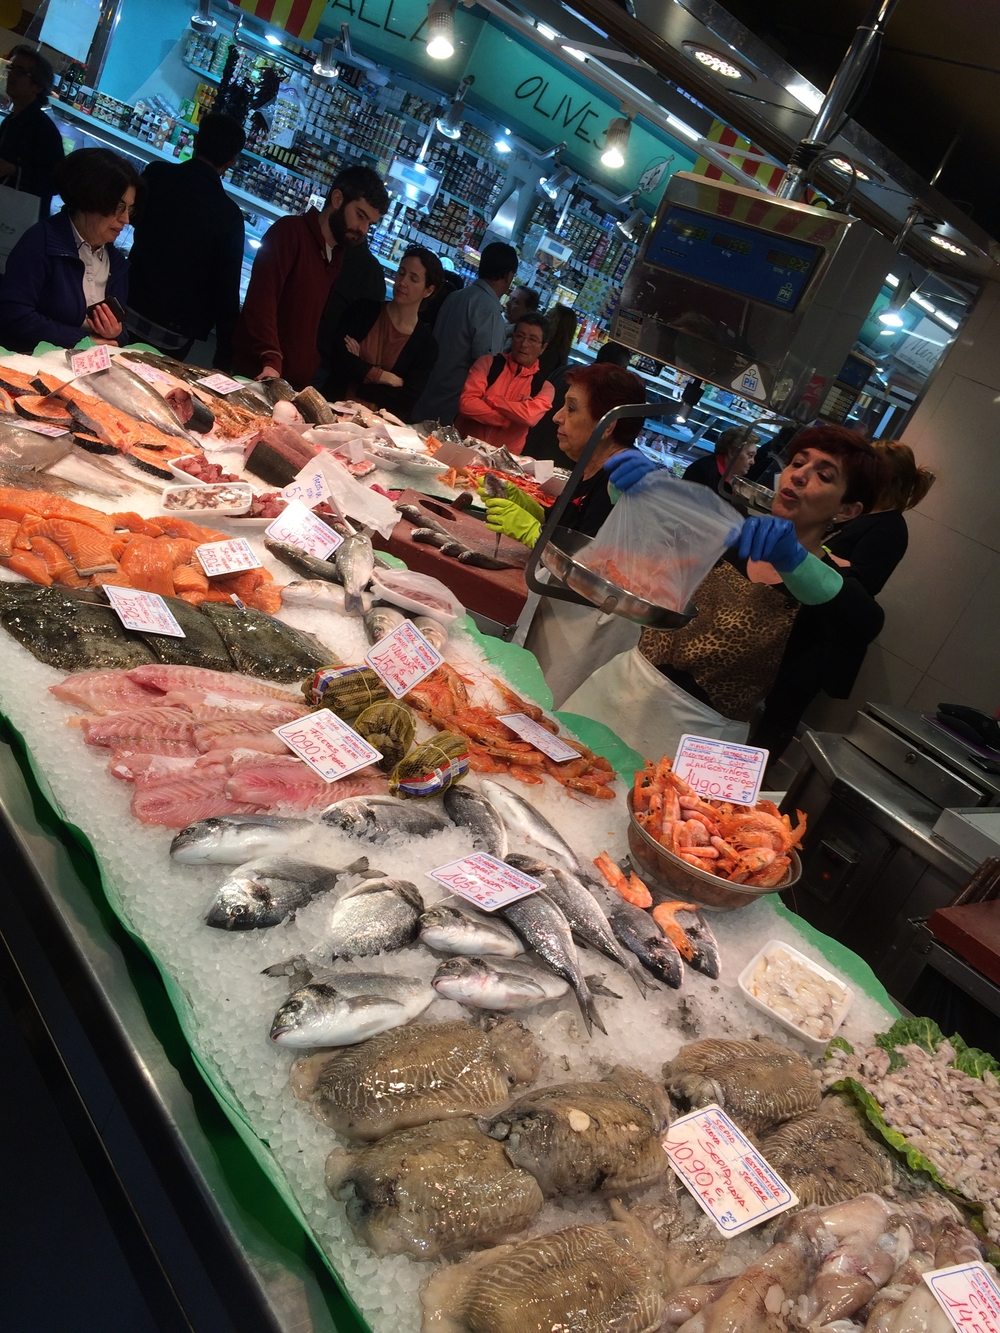 Mercat Santa Caterina - fresh seafood